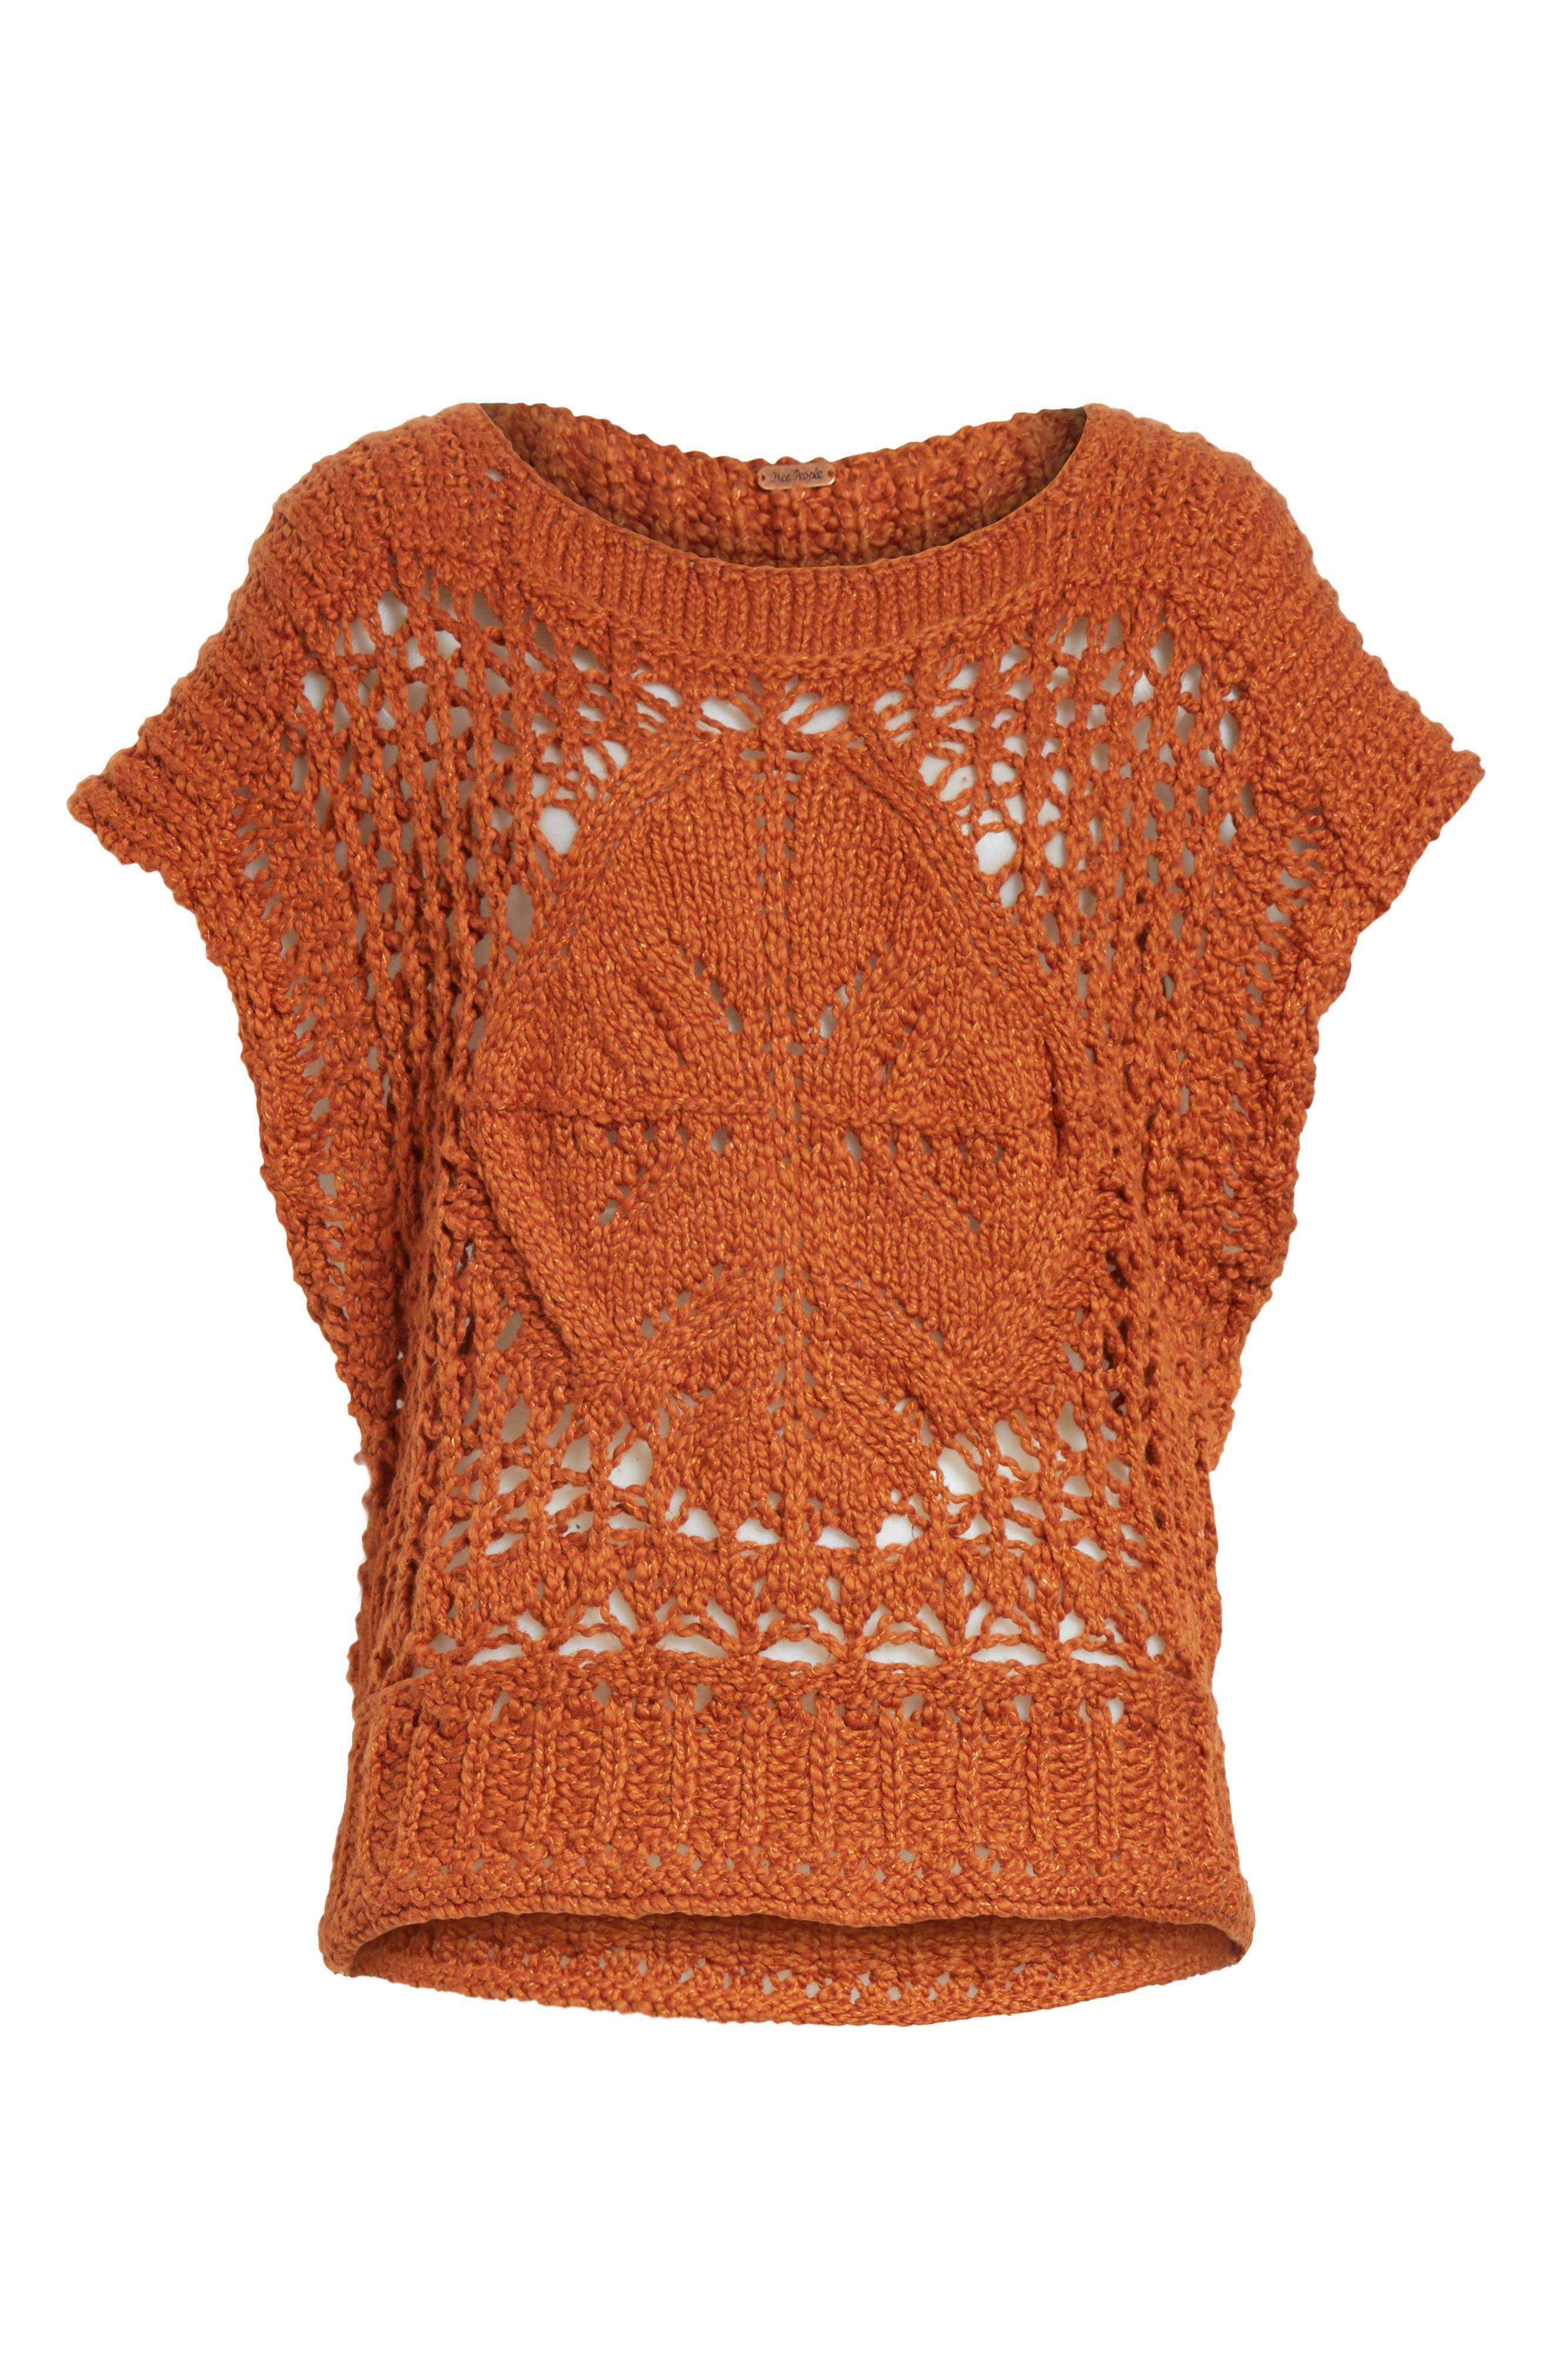 Diamond in the Rough Sweater,                             Alternate thumbnail 6, color,                             Terracotta